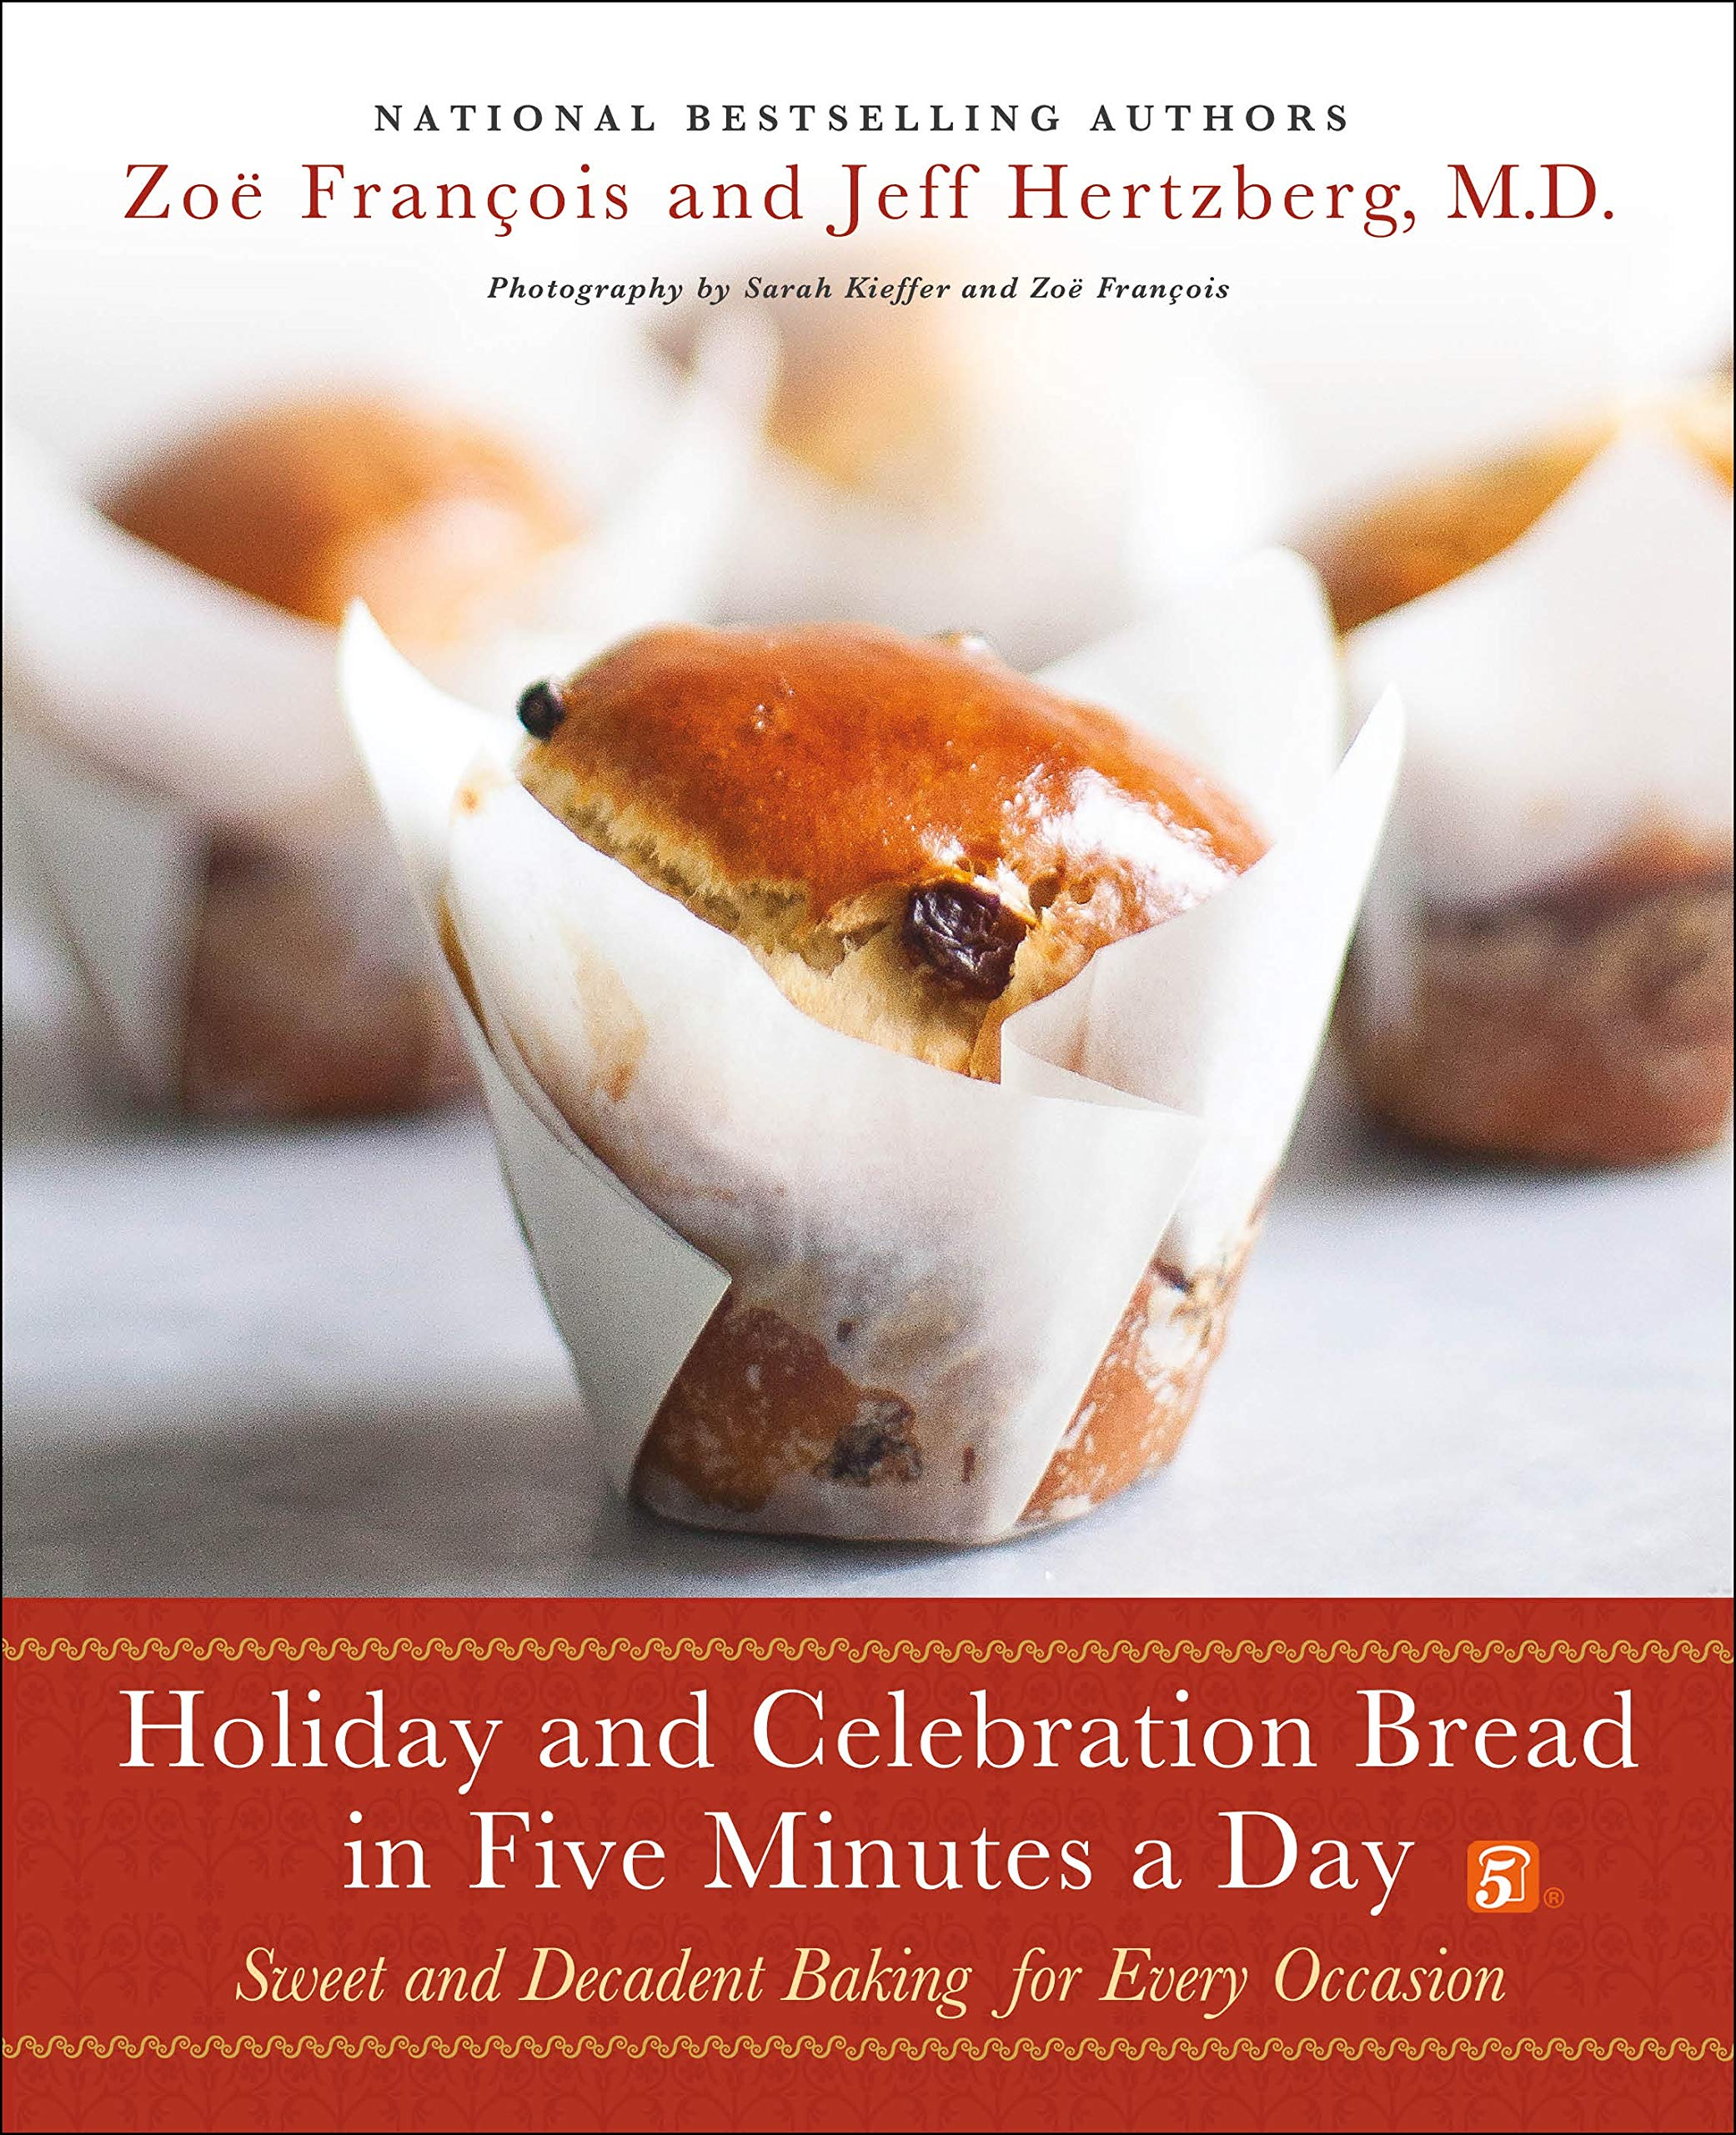 Holiday and Celebration Bread in Five Minutes a Day: Sweet and Decadent Baking for Every Occasion by St. Martin's Press